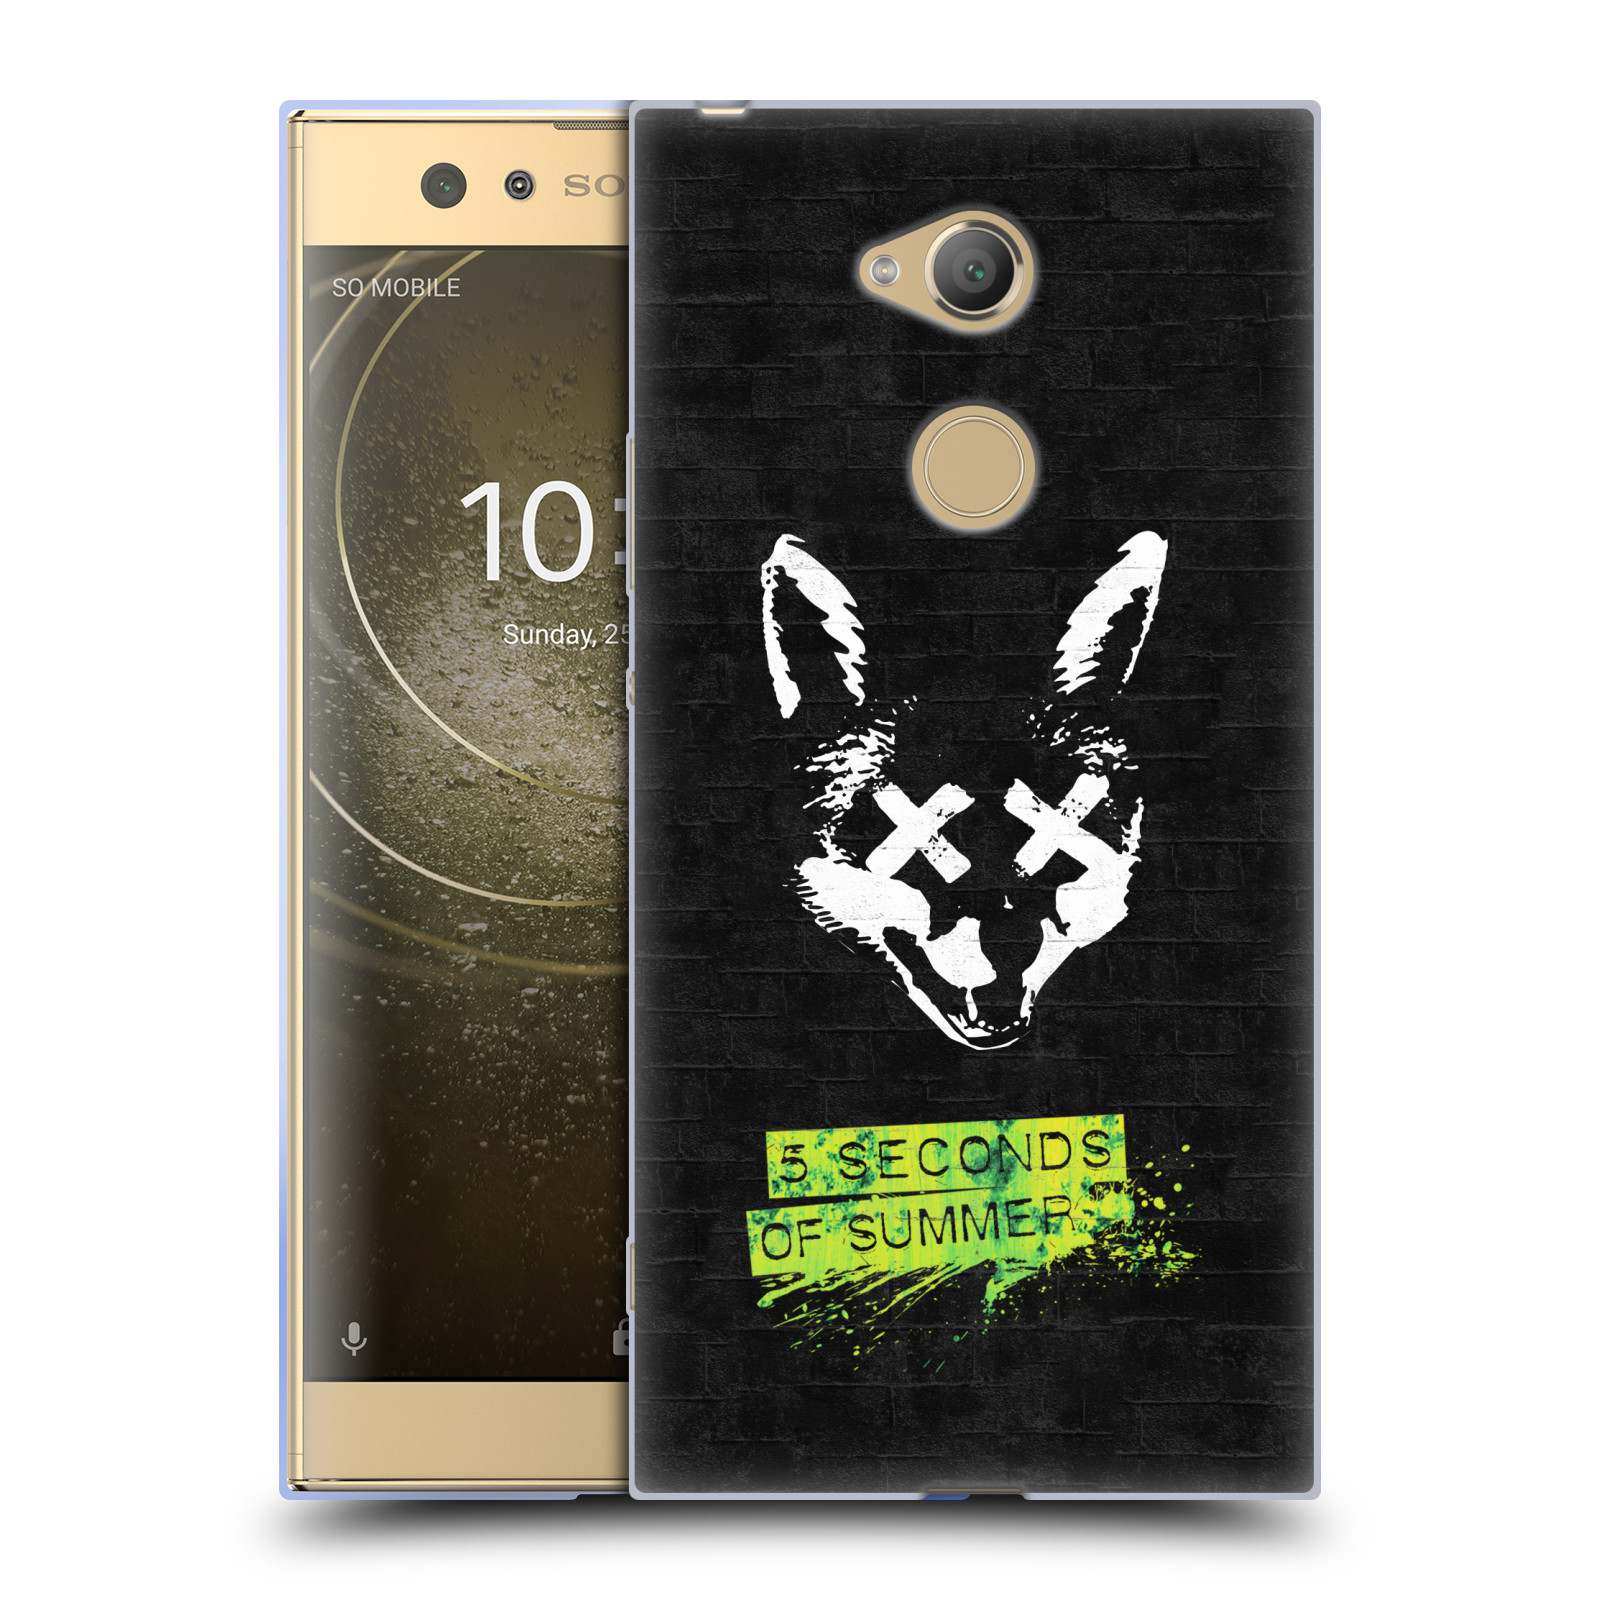 Silikonové pouzdro na mobil Sony Xperia XA2 Ultra - Head Case - 5 Seconds of Summer - Fox